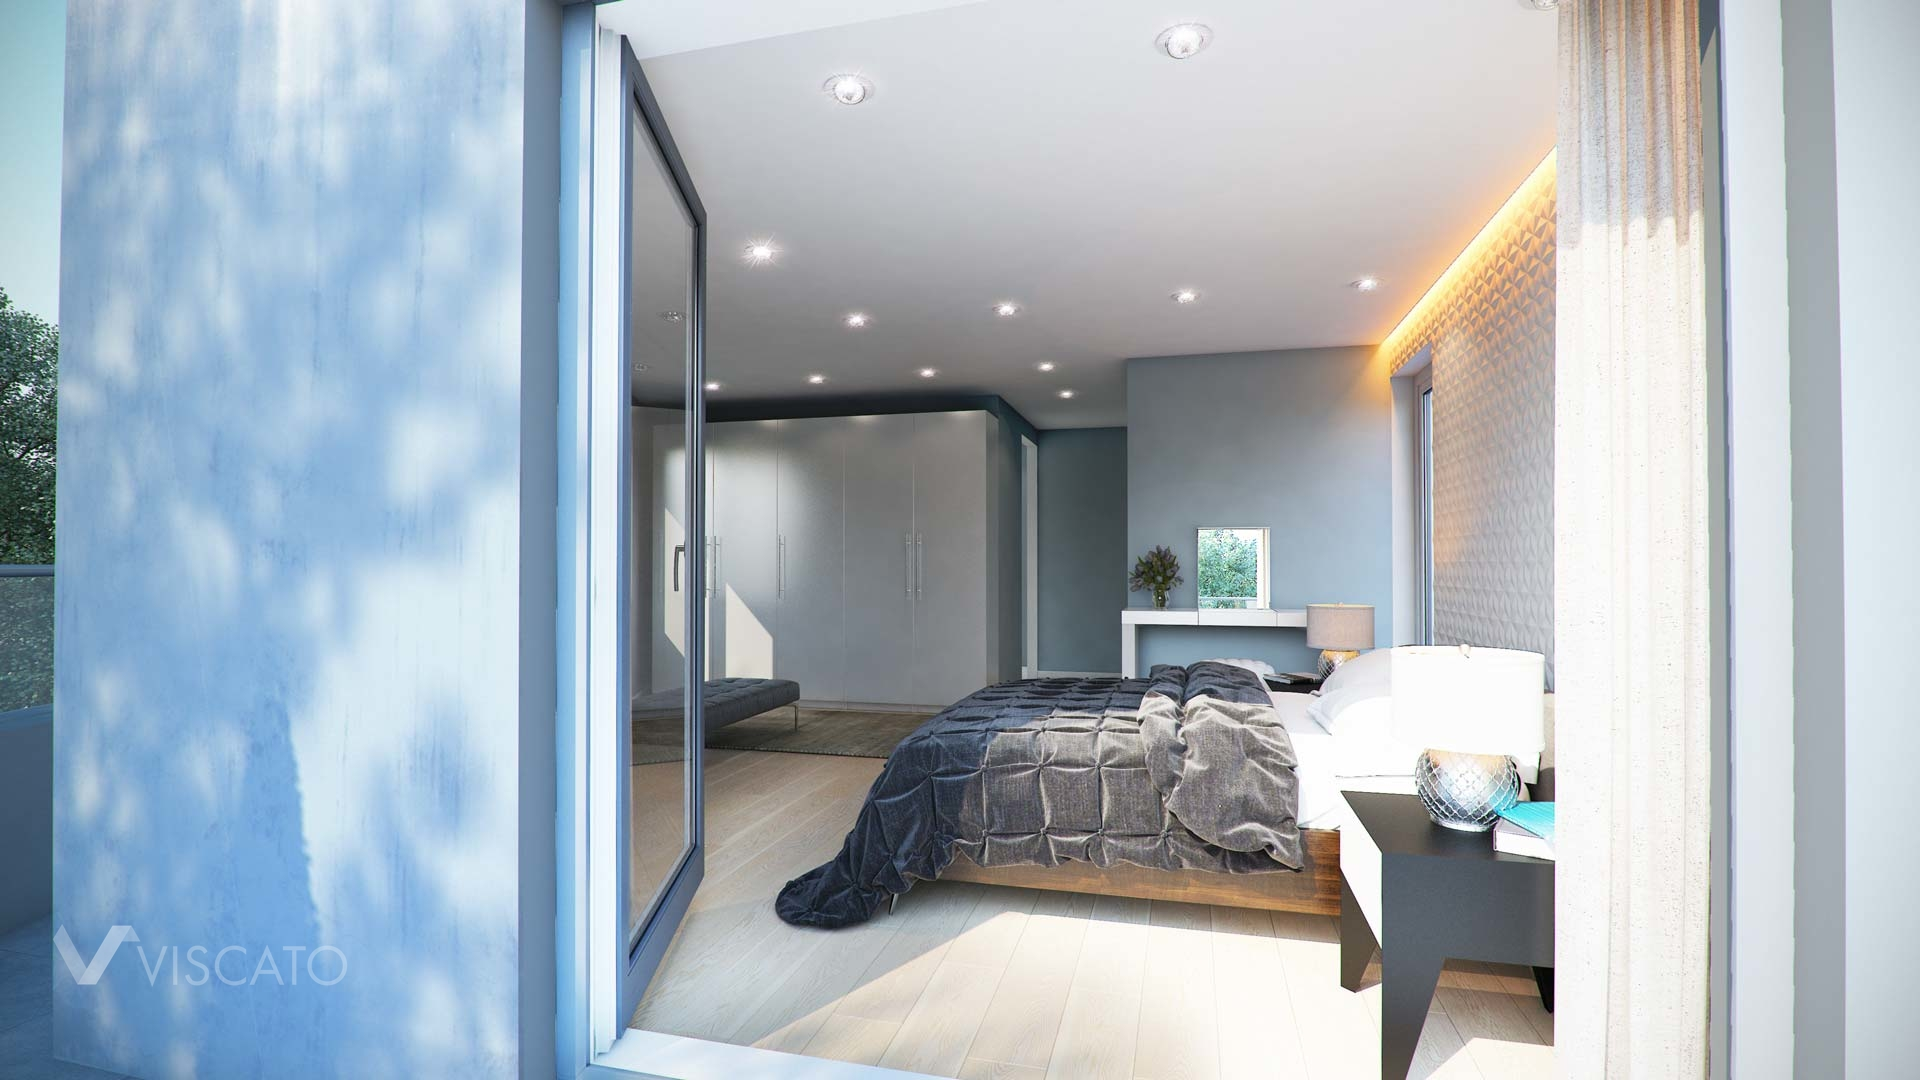 Interior 3d visualization of bedroom in Leverkusen - view from balcony